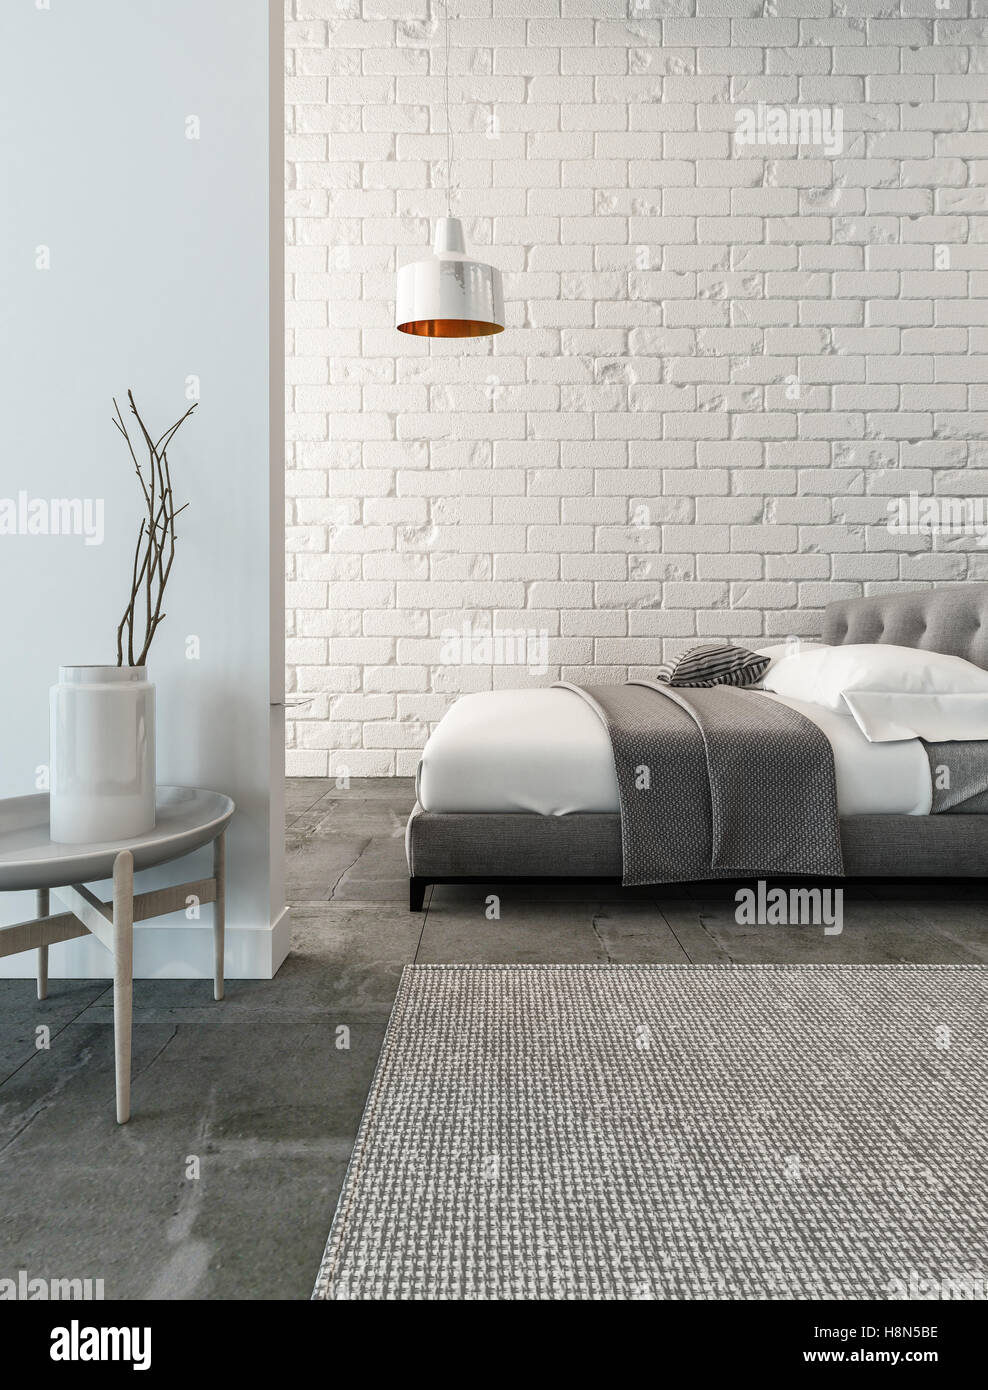 3d Rendering Of Bedroom With White Brick Wall Hanging Lamp And Table Stock Photo Alamy